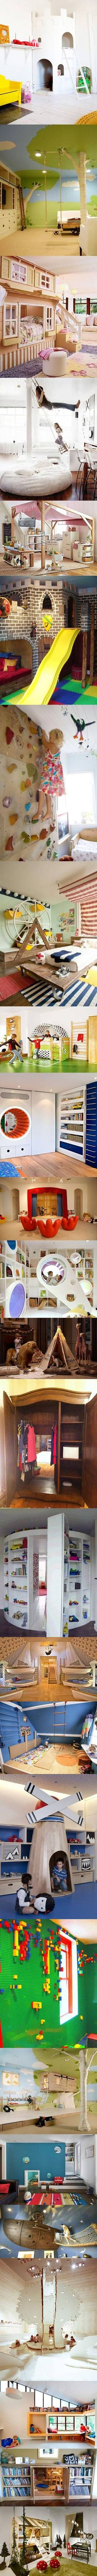 24 Ultra Geeky and Creative Room Ideas for Kids - TechEBlog